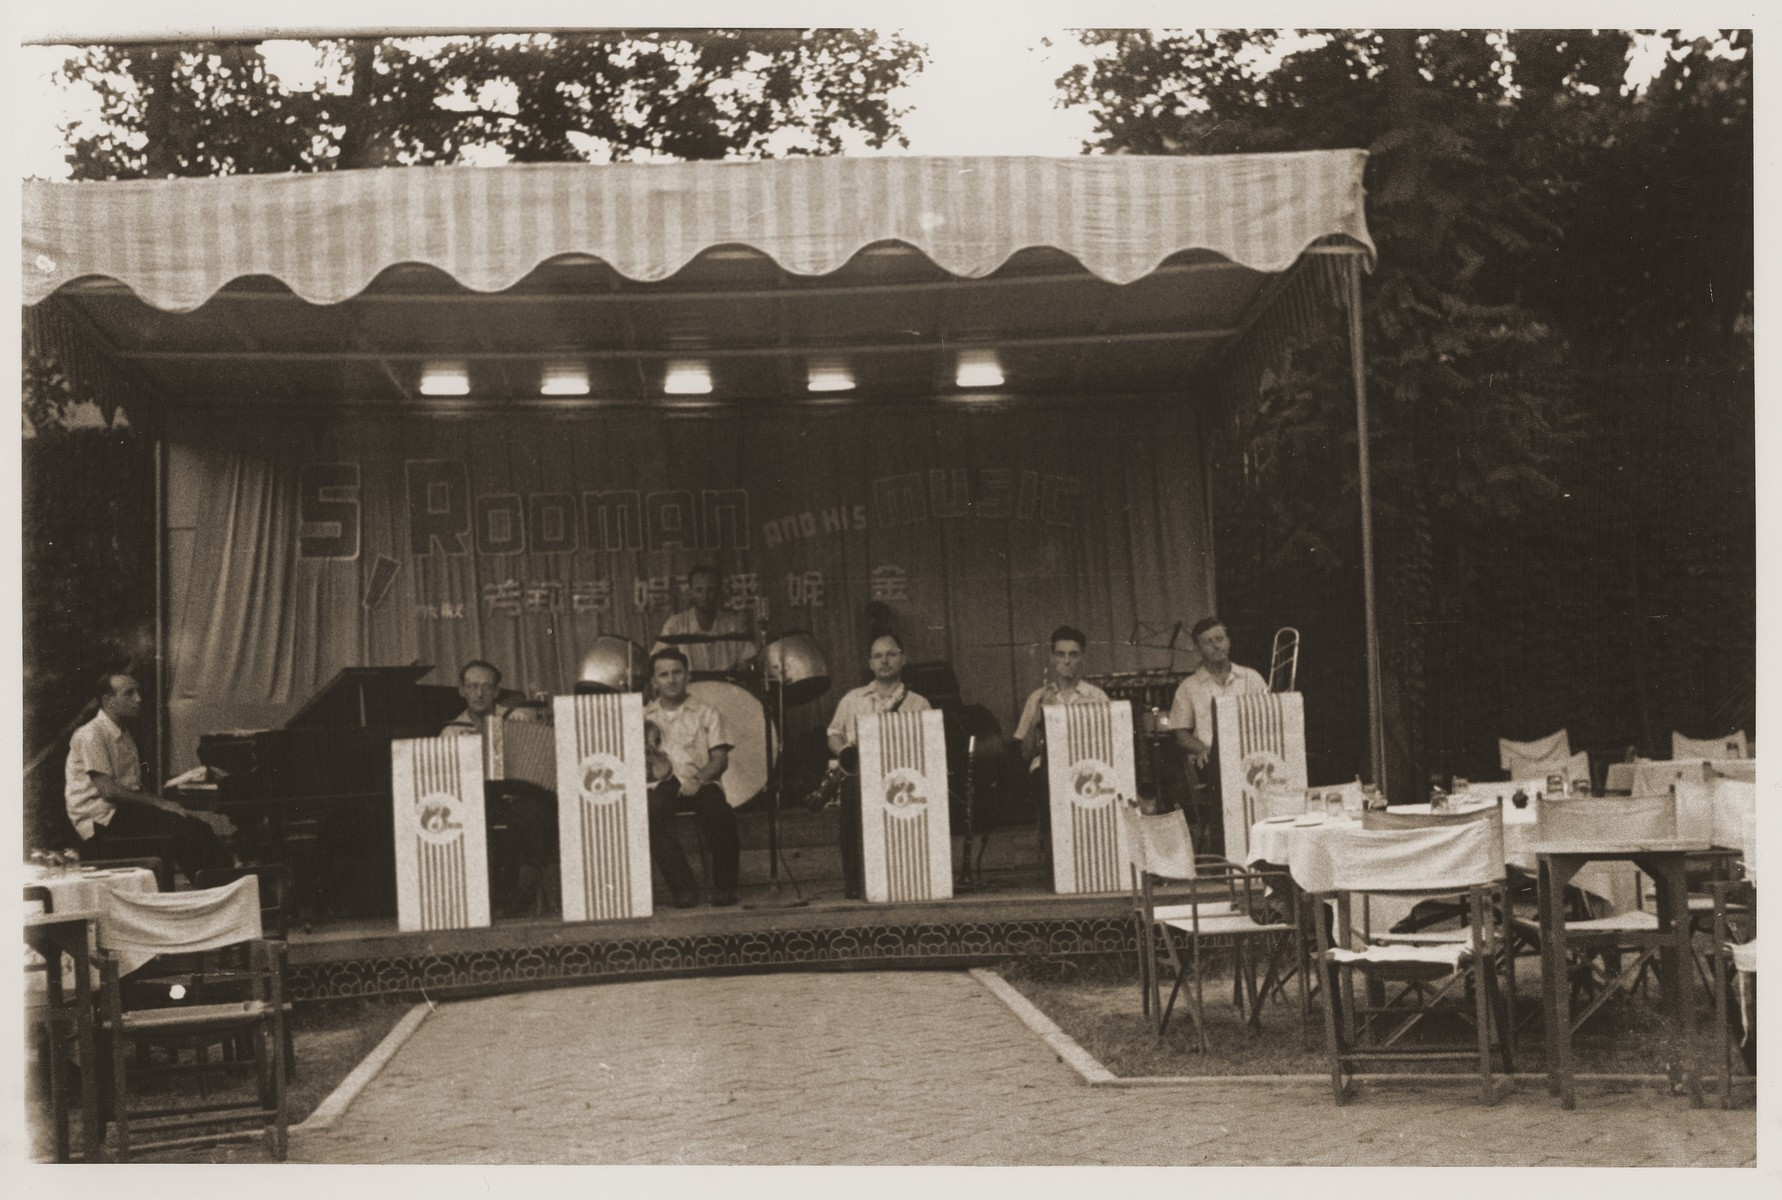 Members of the Siegmund Rodman band perform at the Roof Garden restaurant on Ward Road in Shanghai.    The Roof Garden was a favorite cafe for Jewish refugees in Shanghai.